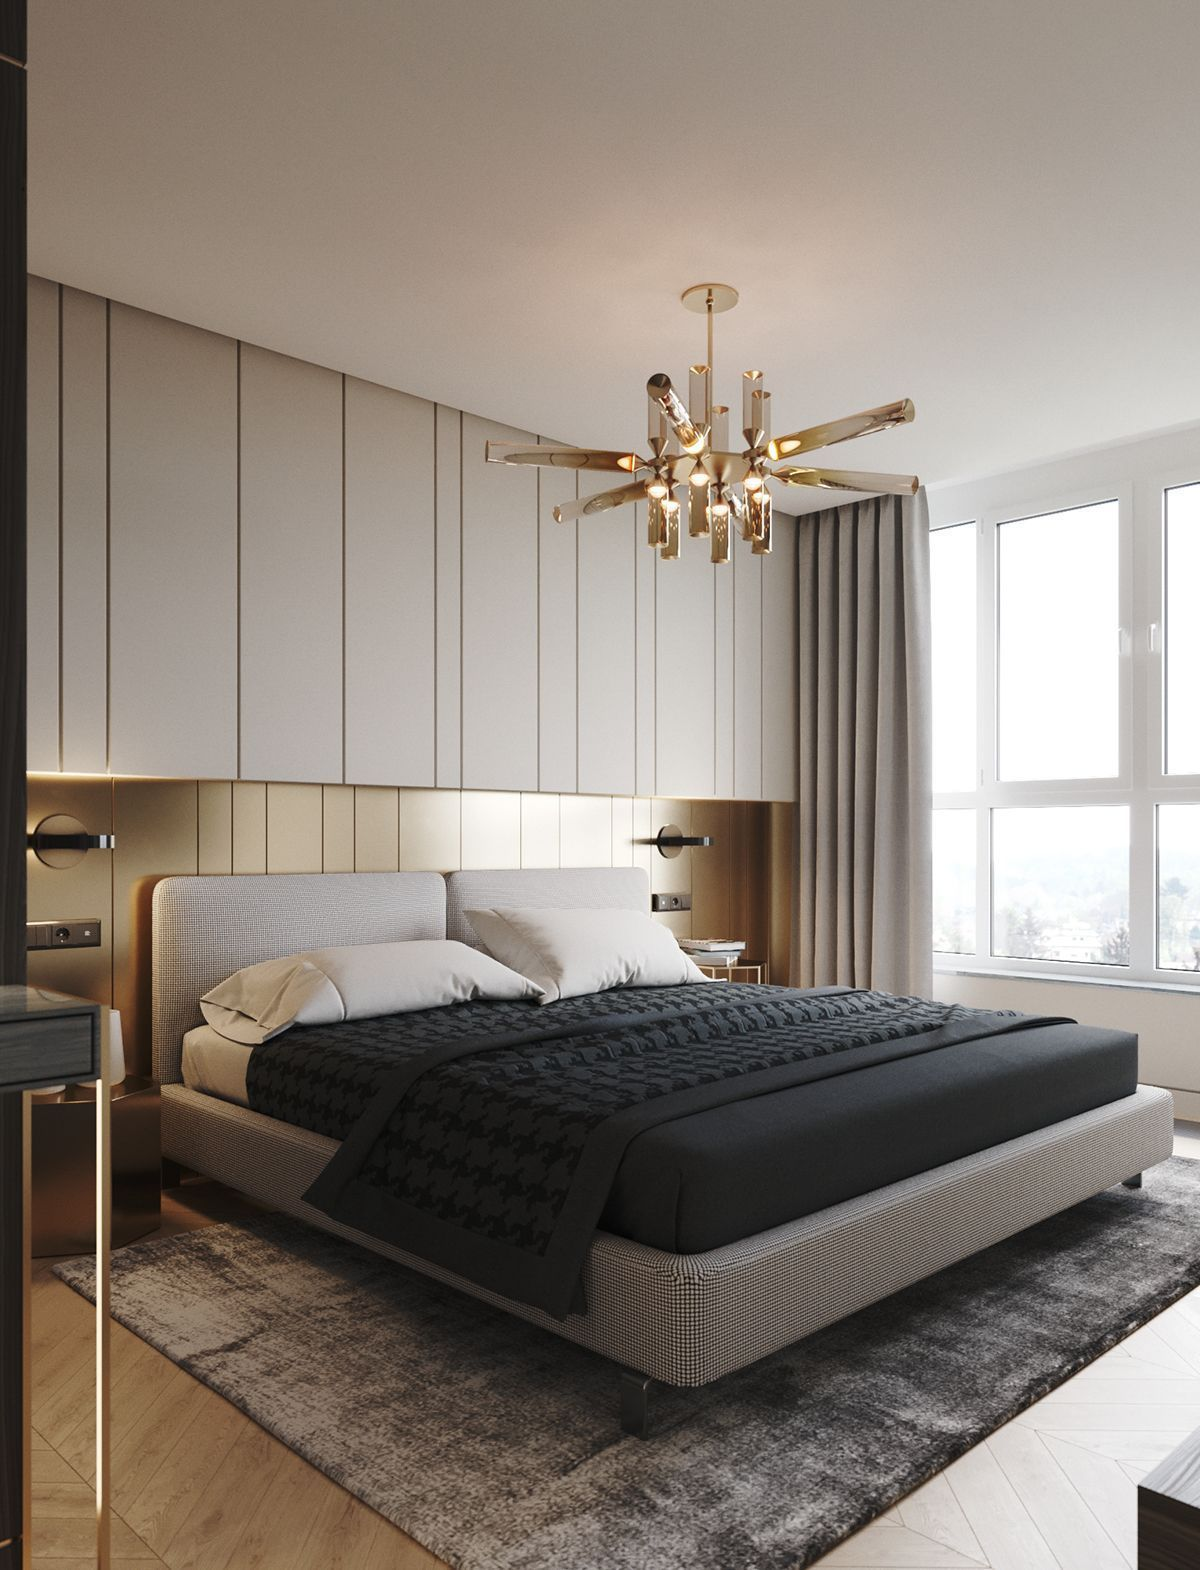 Hotel Room Decorating Ideas: 20+ Modern Bedroom Ideas Style Suggestions And Photo